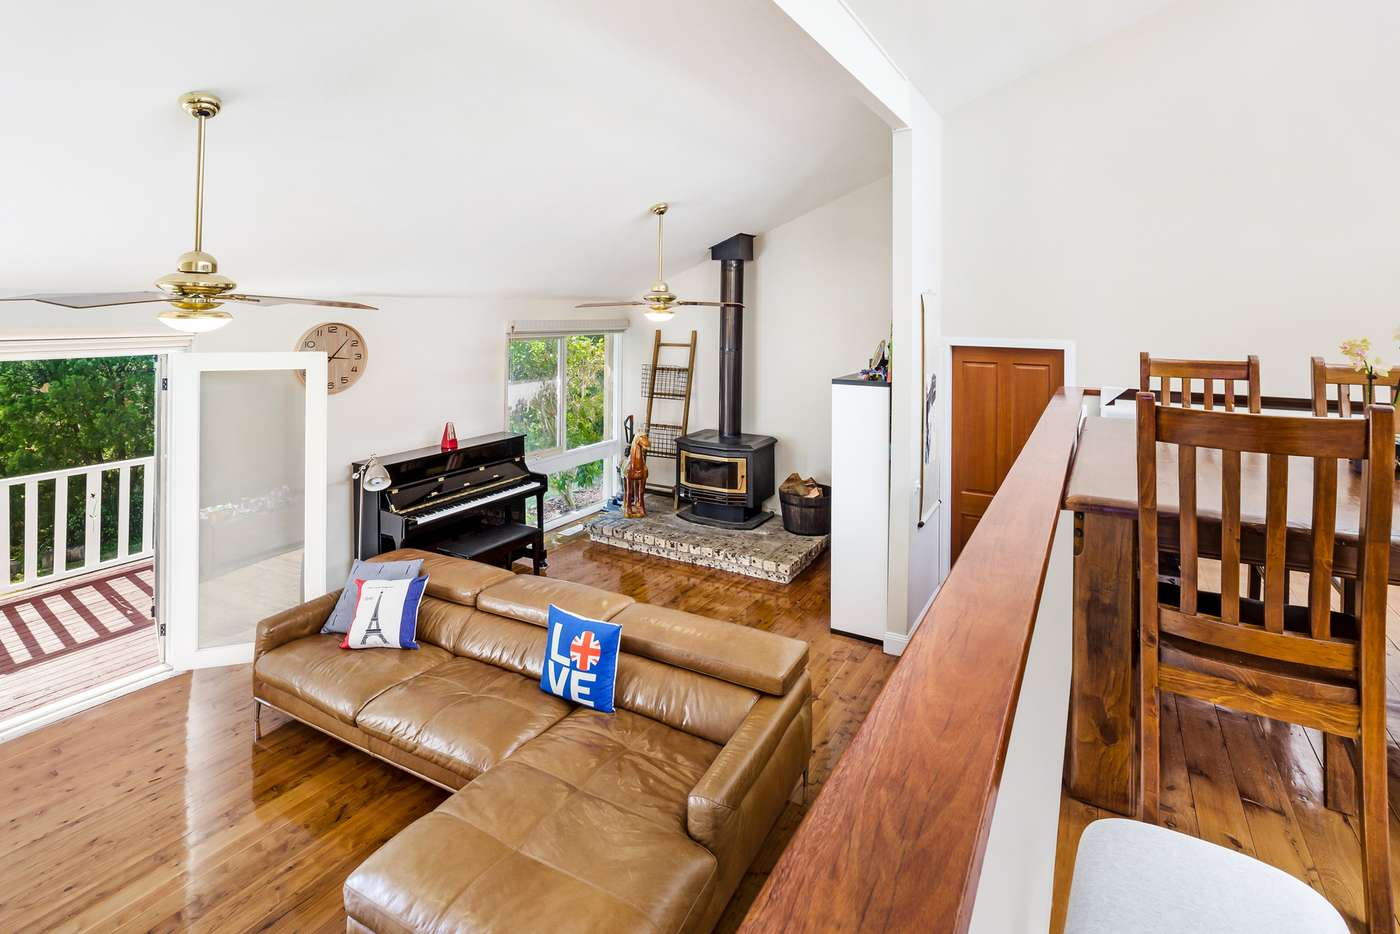 Fifth view of Homely house listing, 3 Larra Crescent, North Rocks NSW 2151